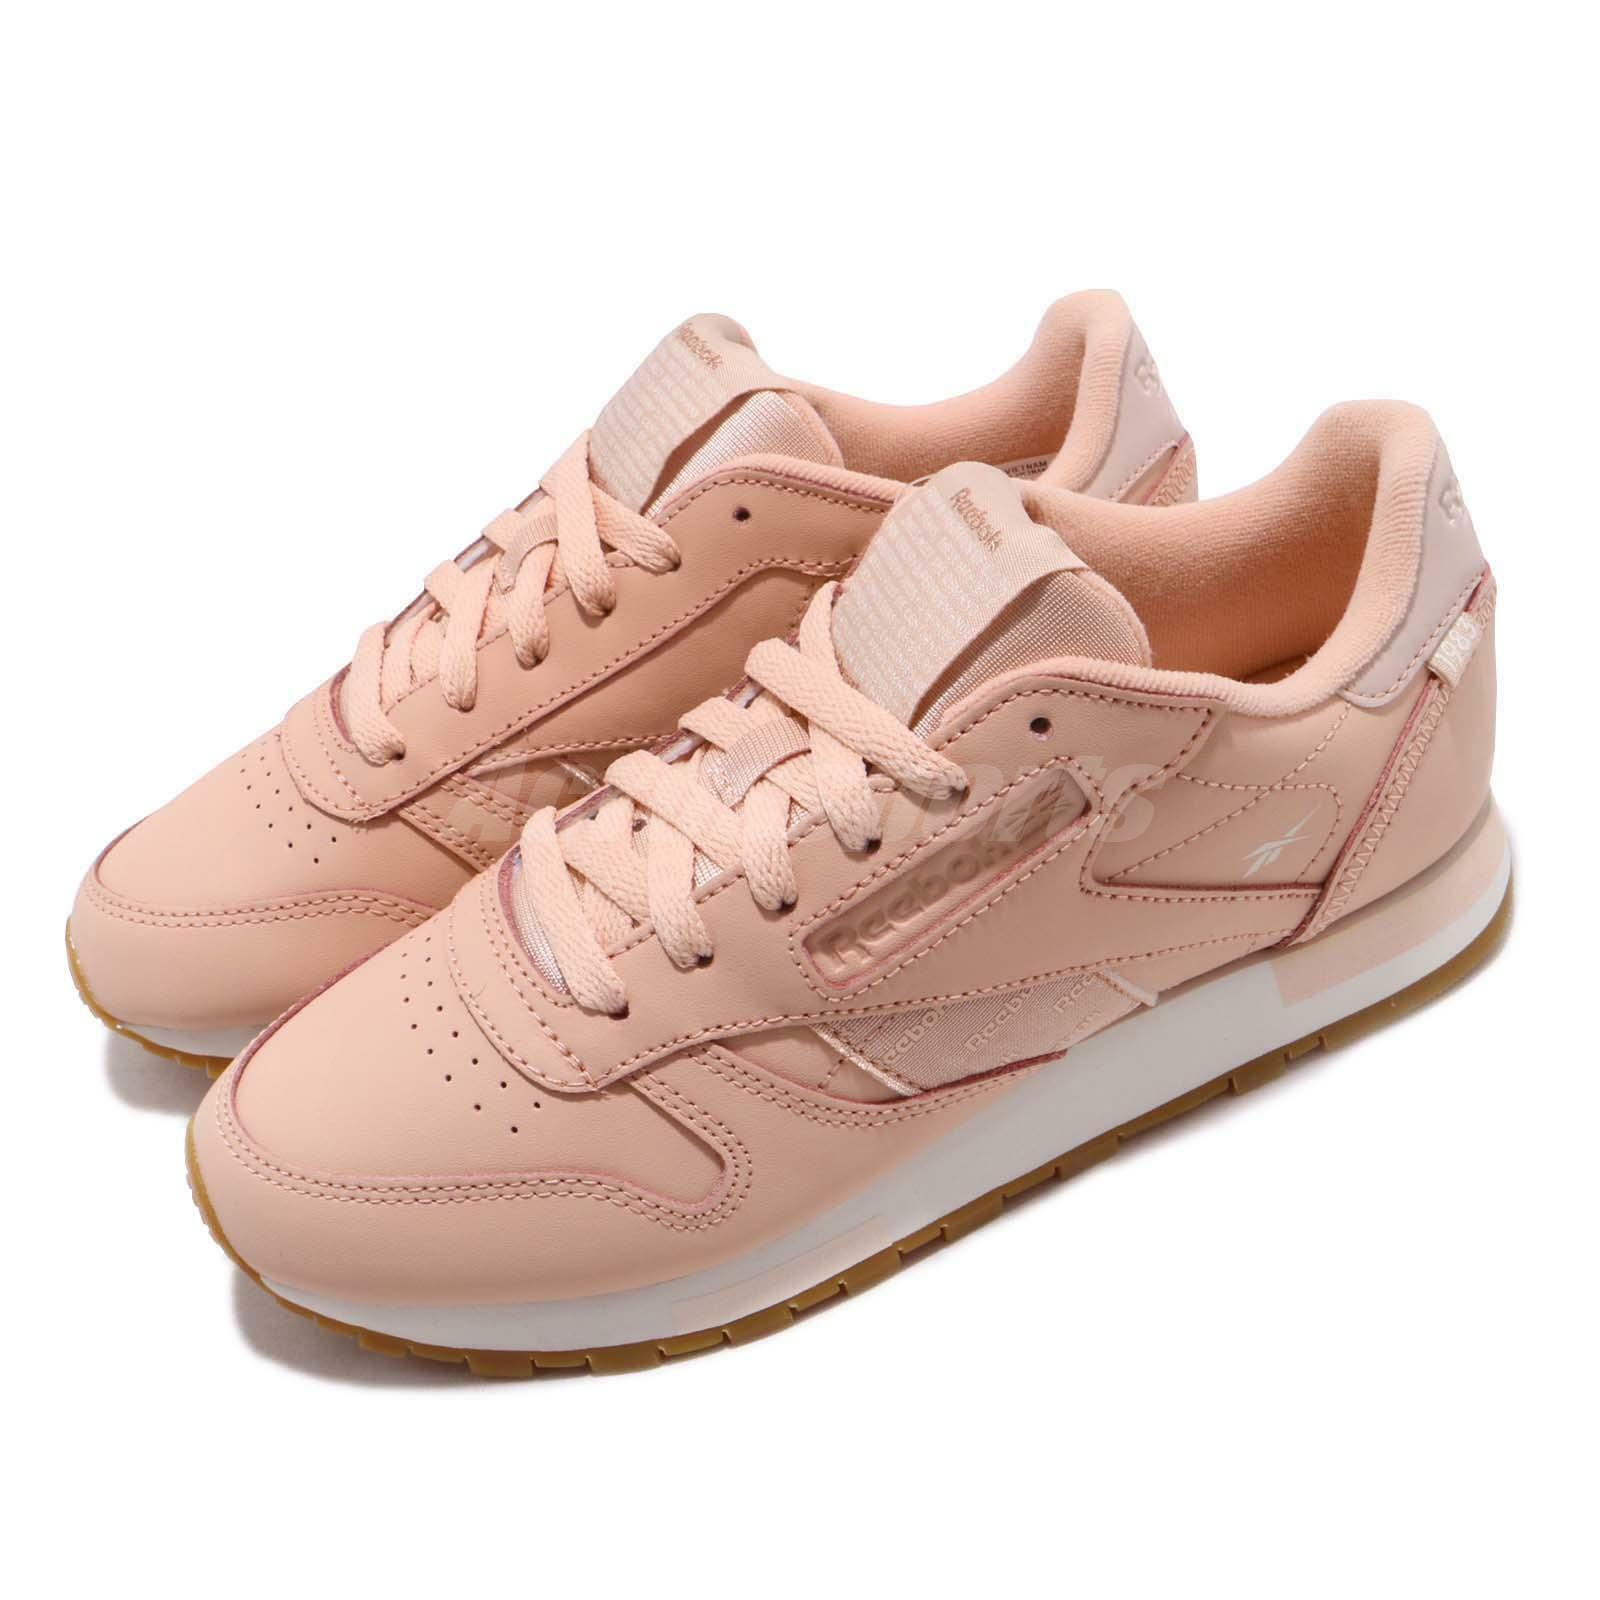 Reebok Classic Leather Altered pink Cloud gold Gum Women shoes Sneaker DV5236